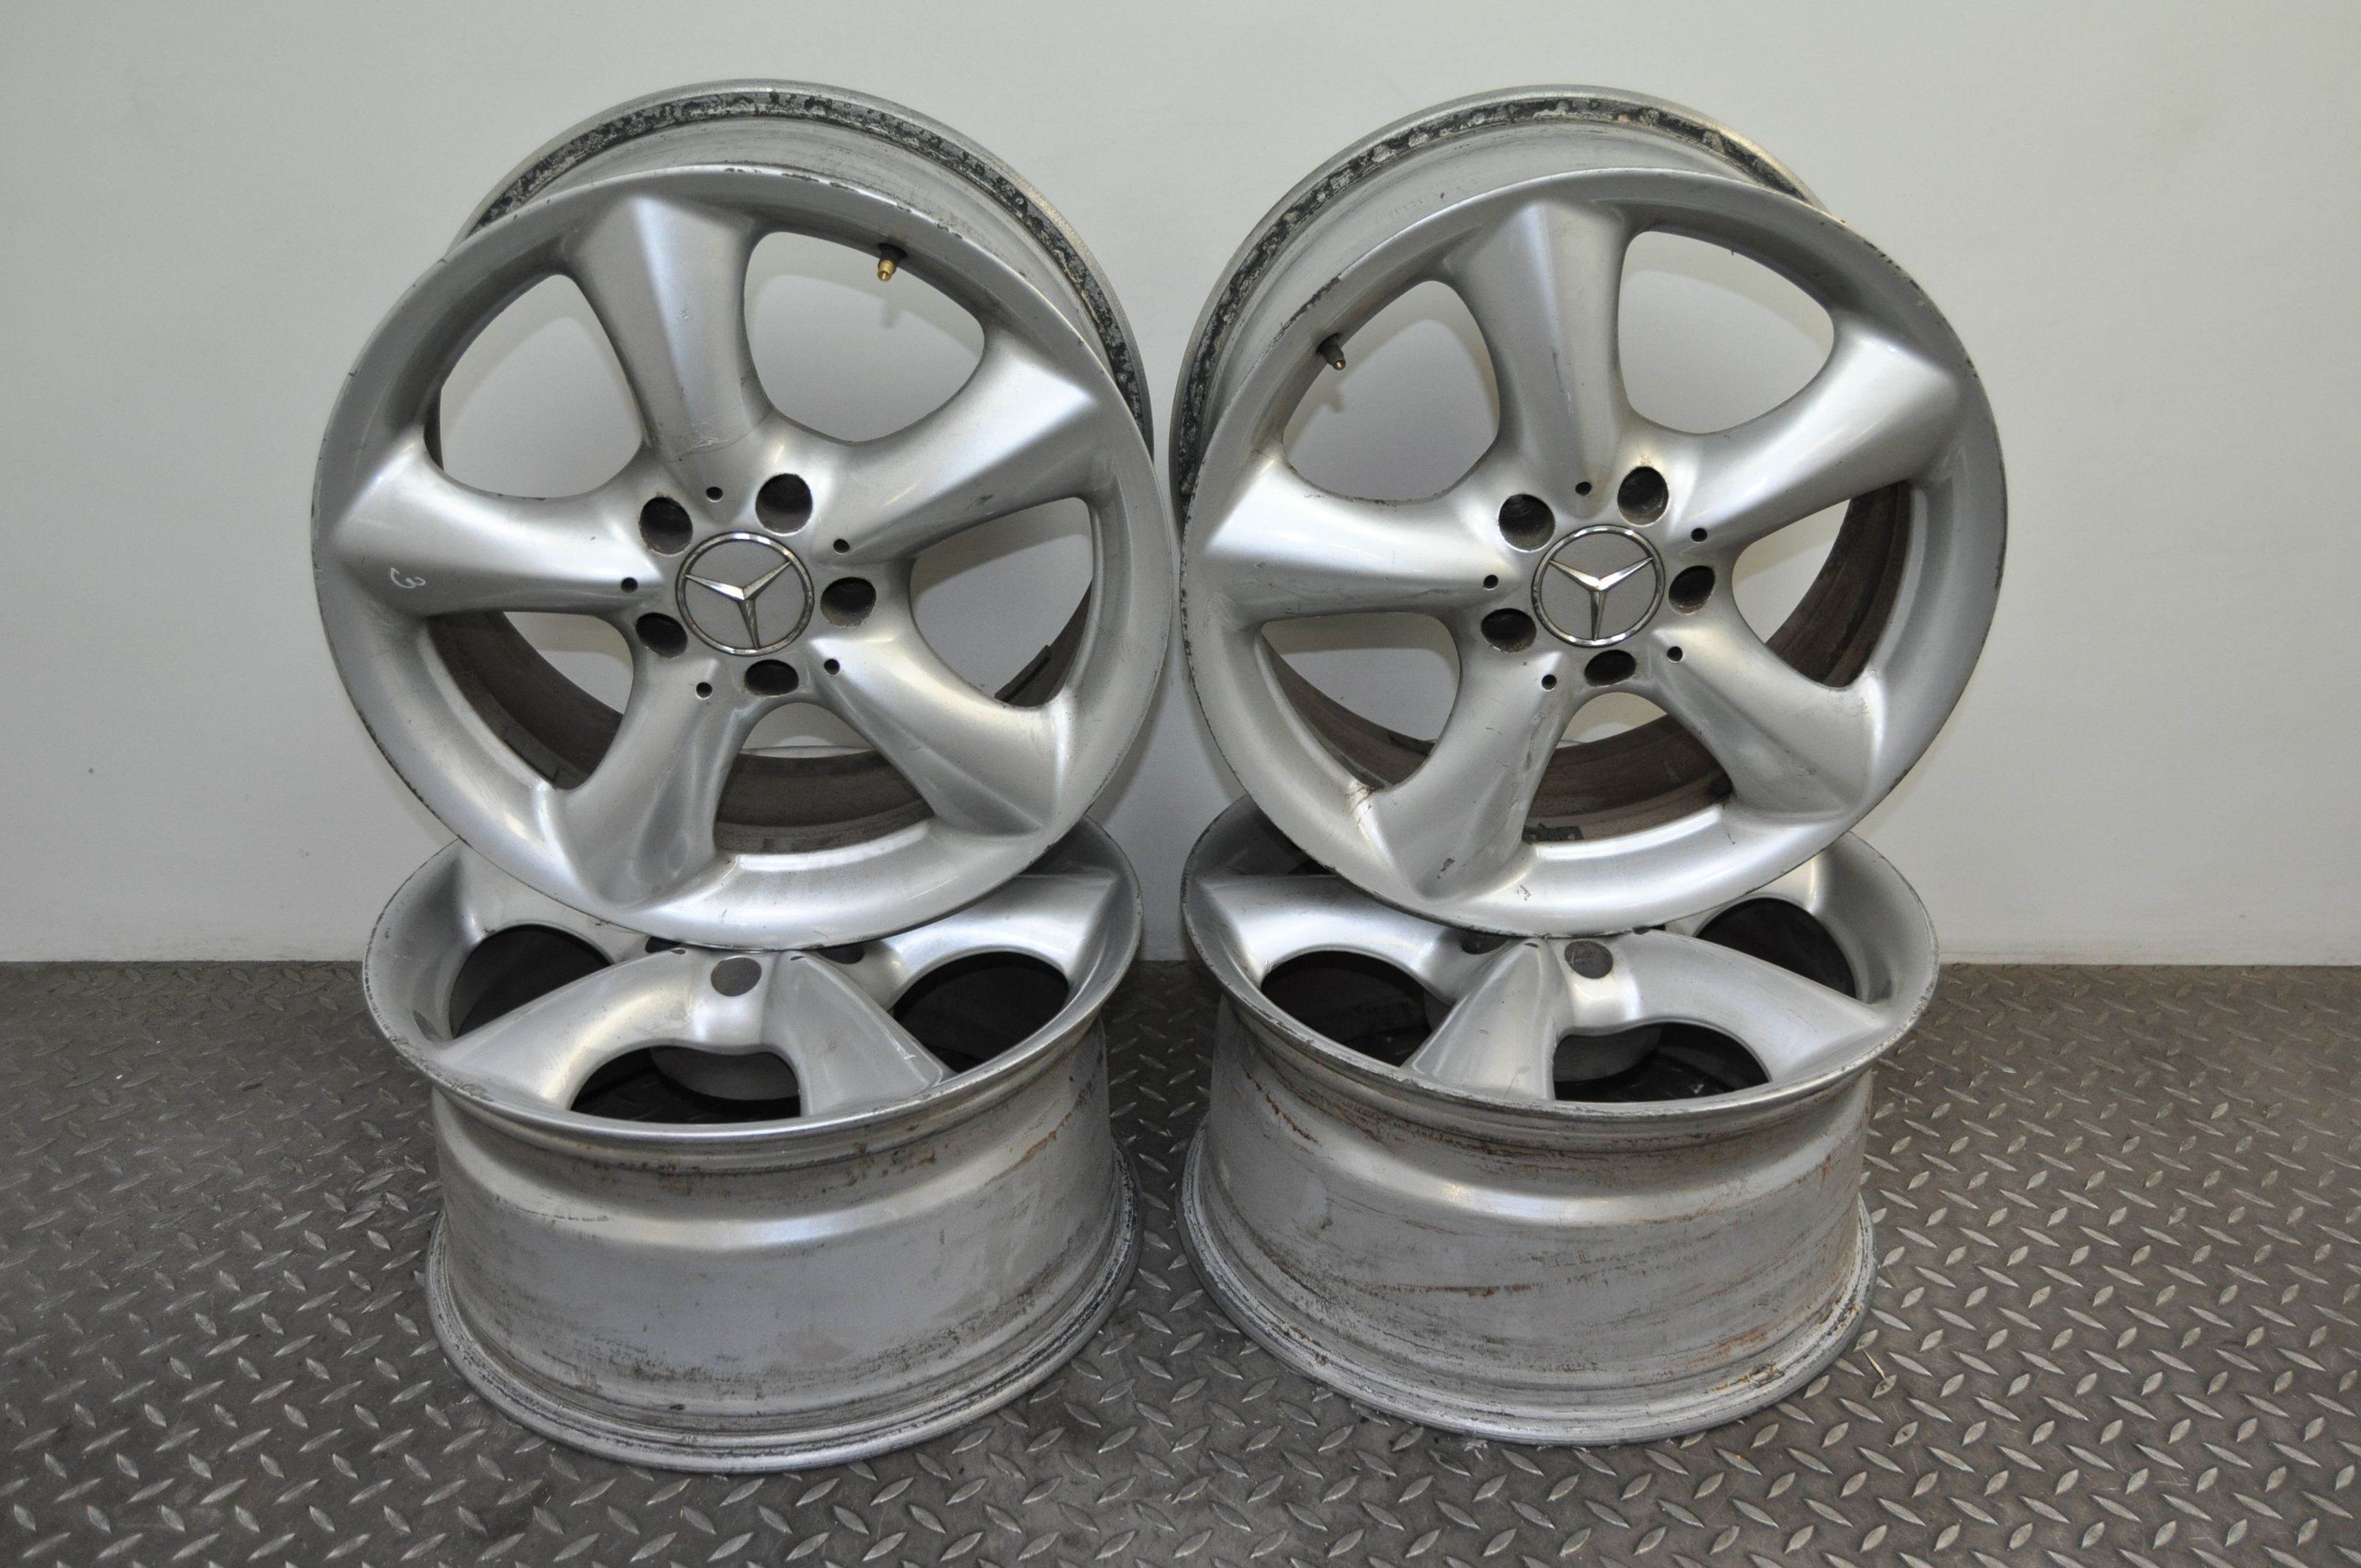 Mercedes benz clk c209 2004 original 17 adharaz alloy for Mercedes benz mag wheels